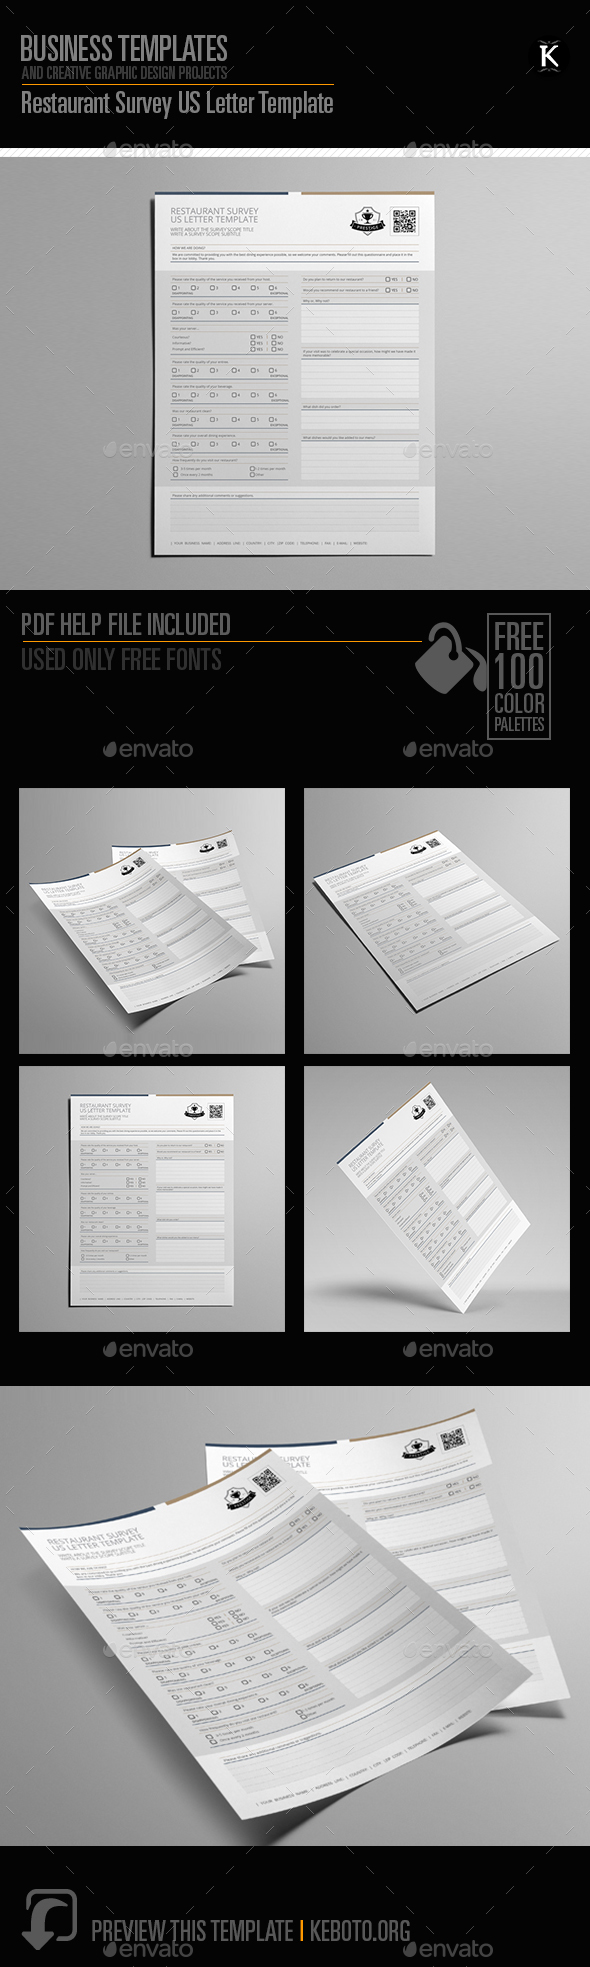 Restaurant Survey US Letter Template - Miscellaneous Print Templates